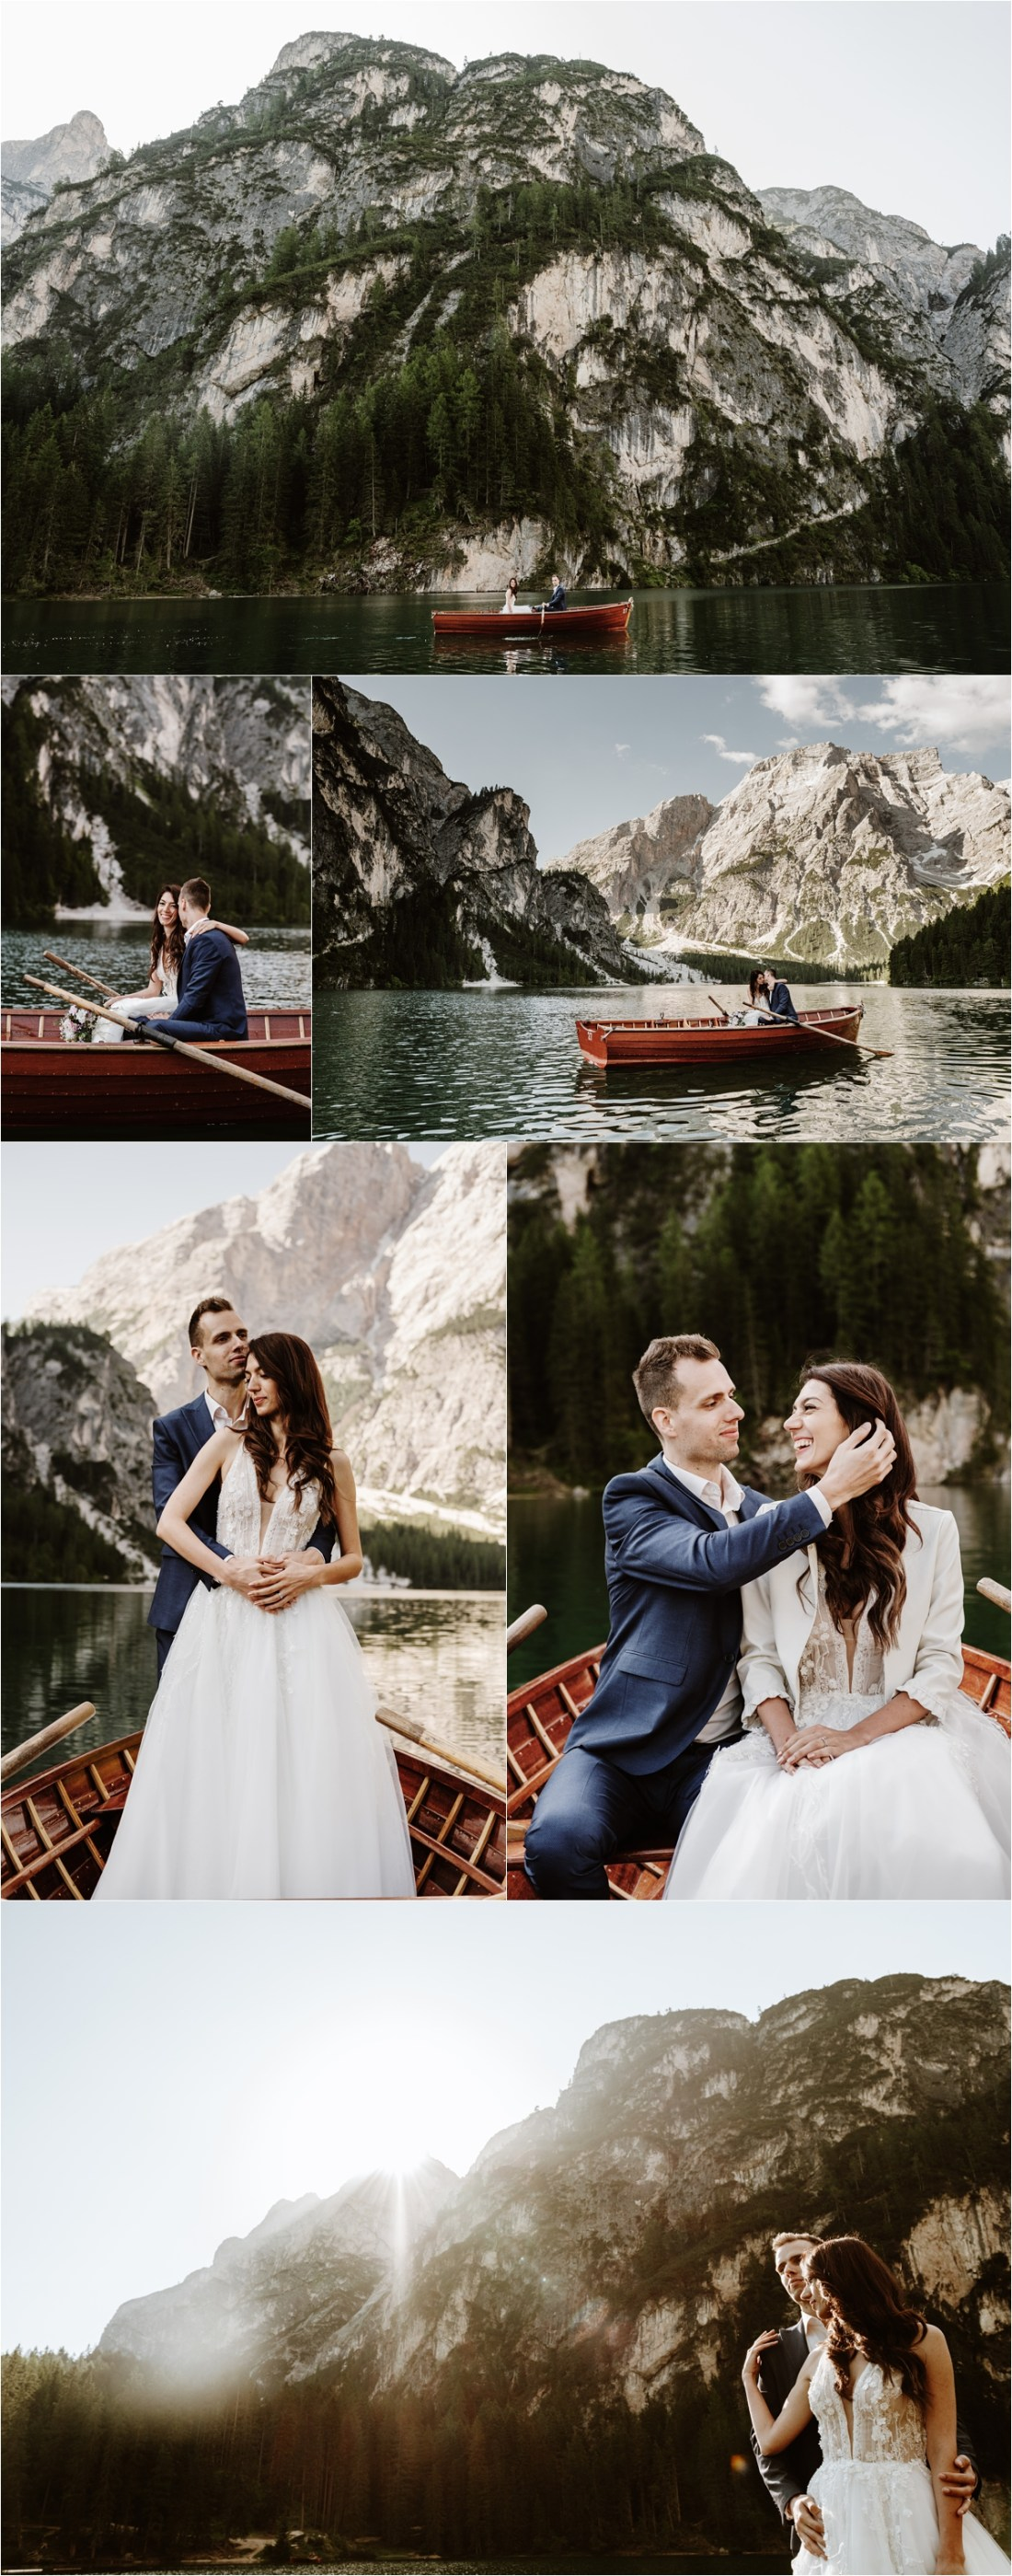 The bride and groom Patya & Tihomir go boating on Lake Braies. Photography by Wild Connections Photography